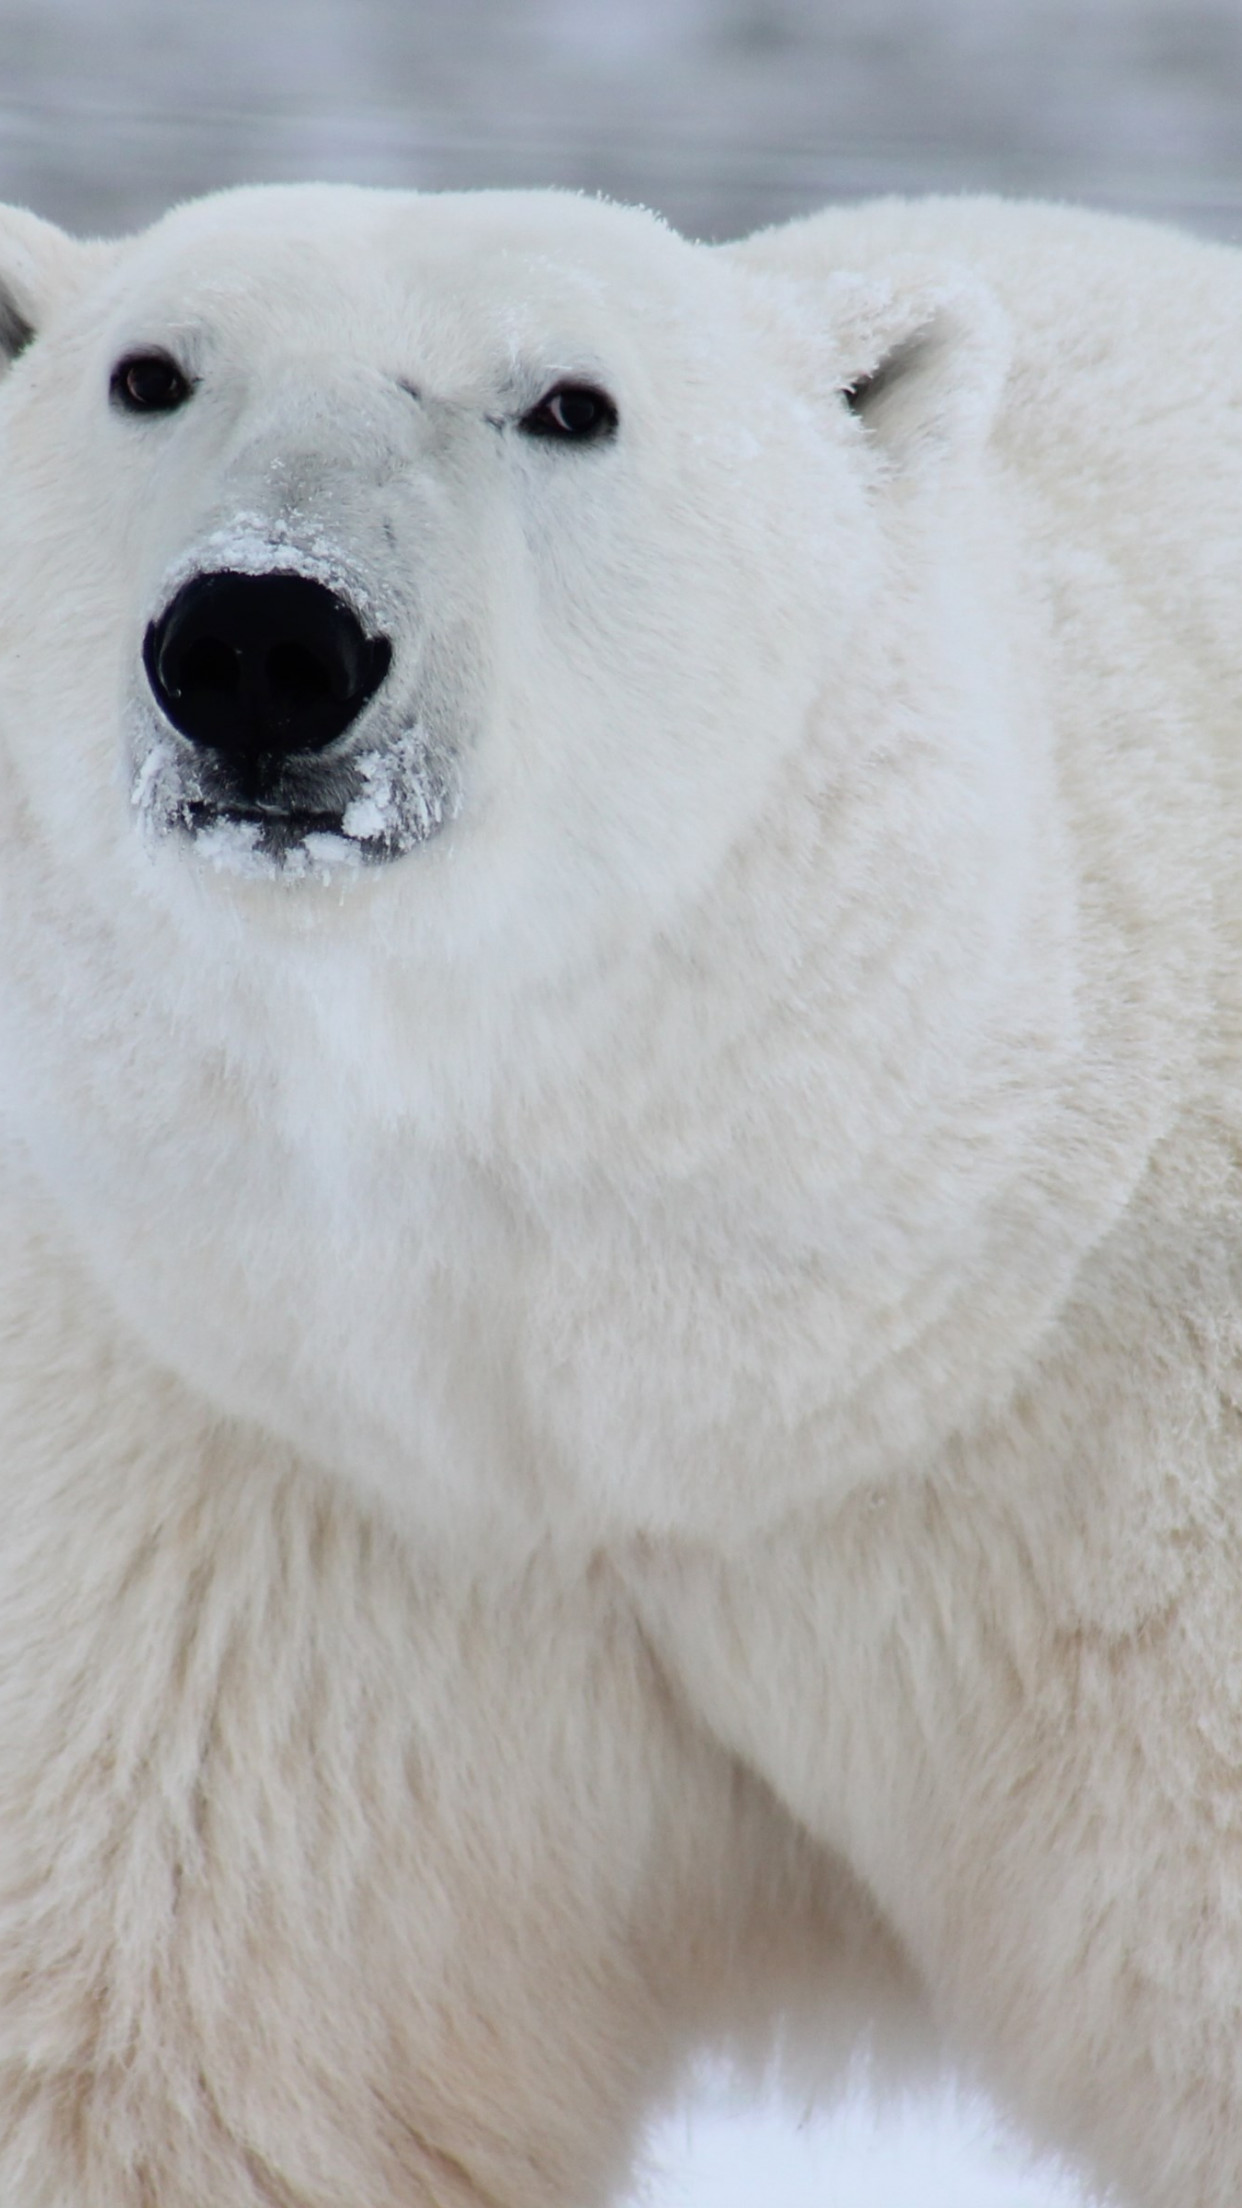 Polar bear in his environment wallpaper 1242x2208